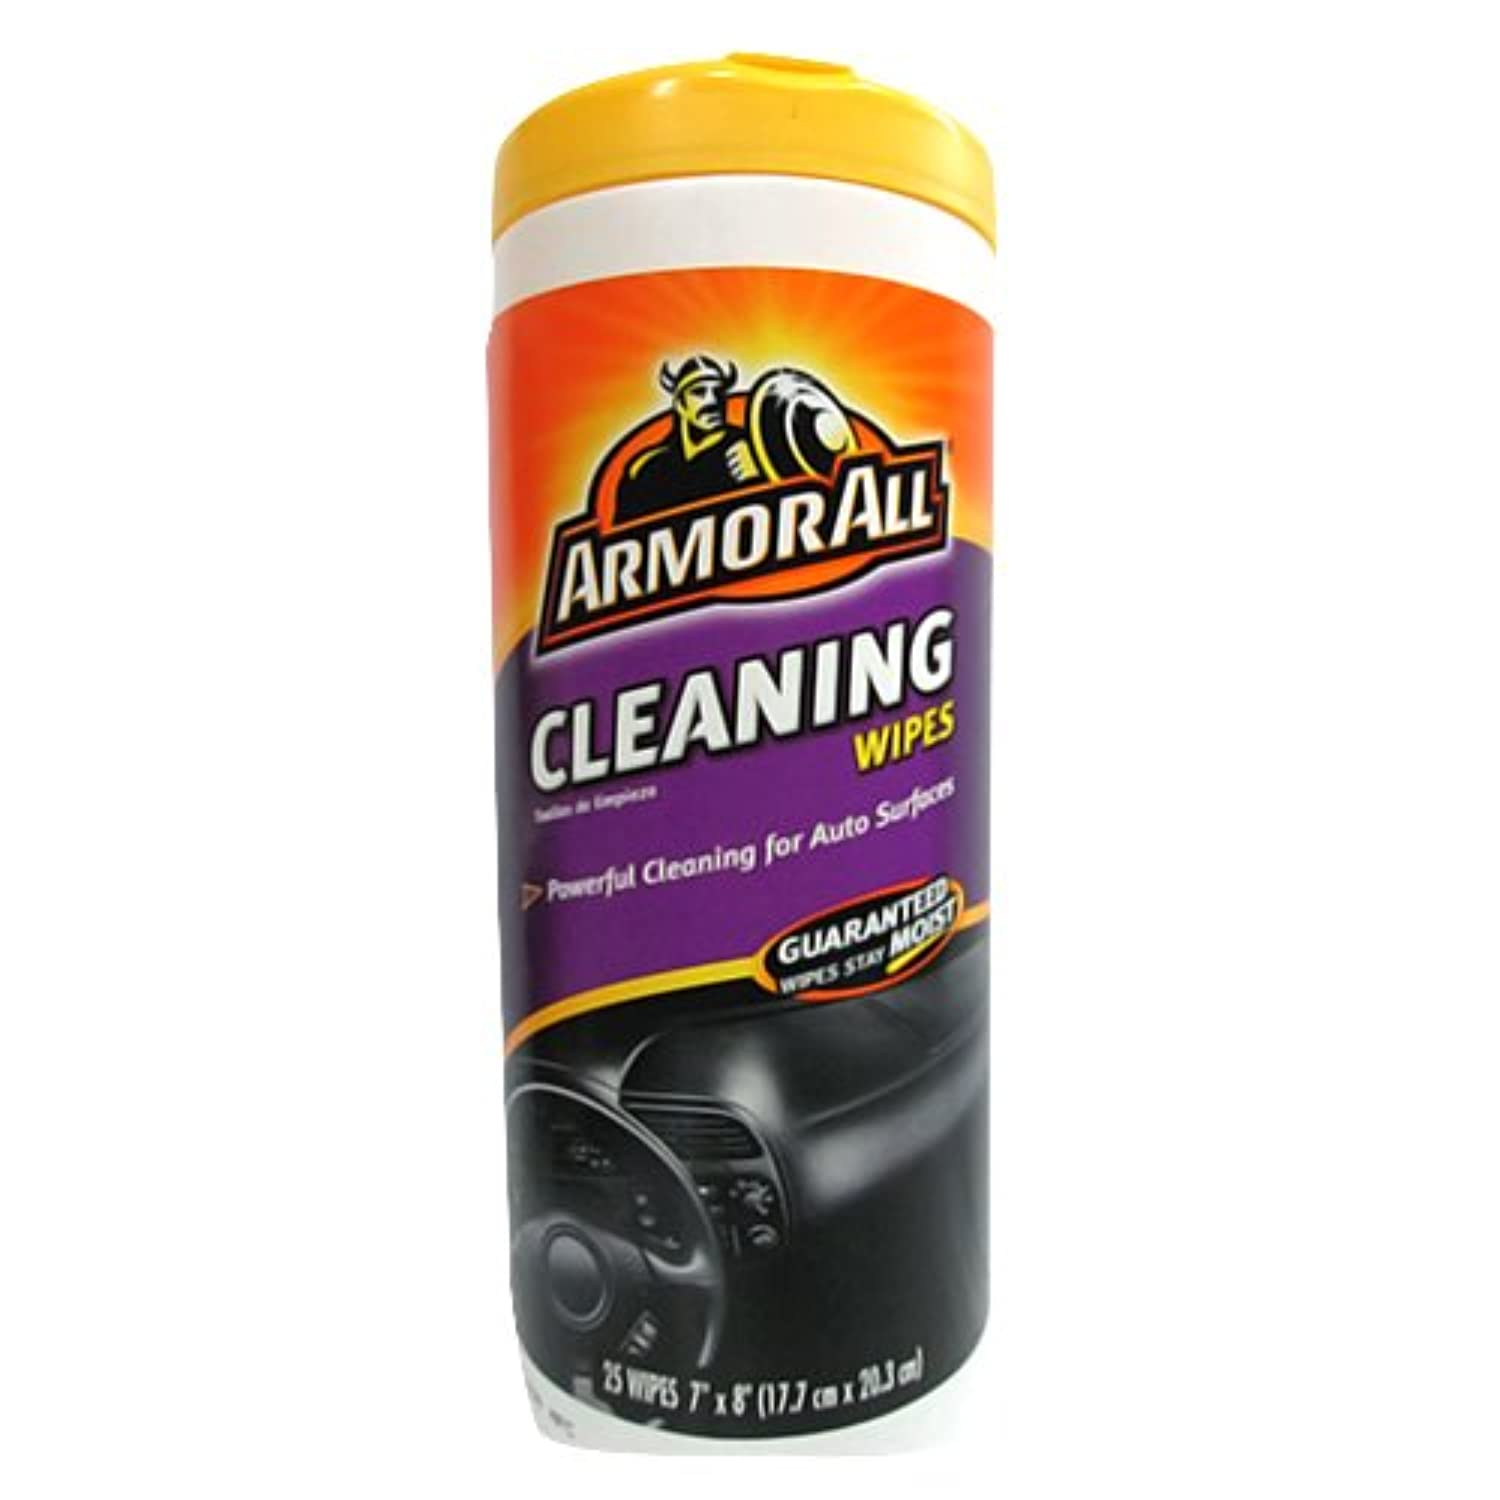 Armor All Multipurpose Cleaning Wipes by Armor All